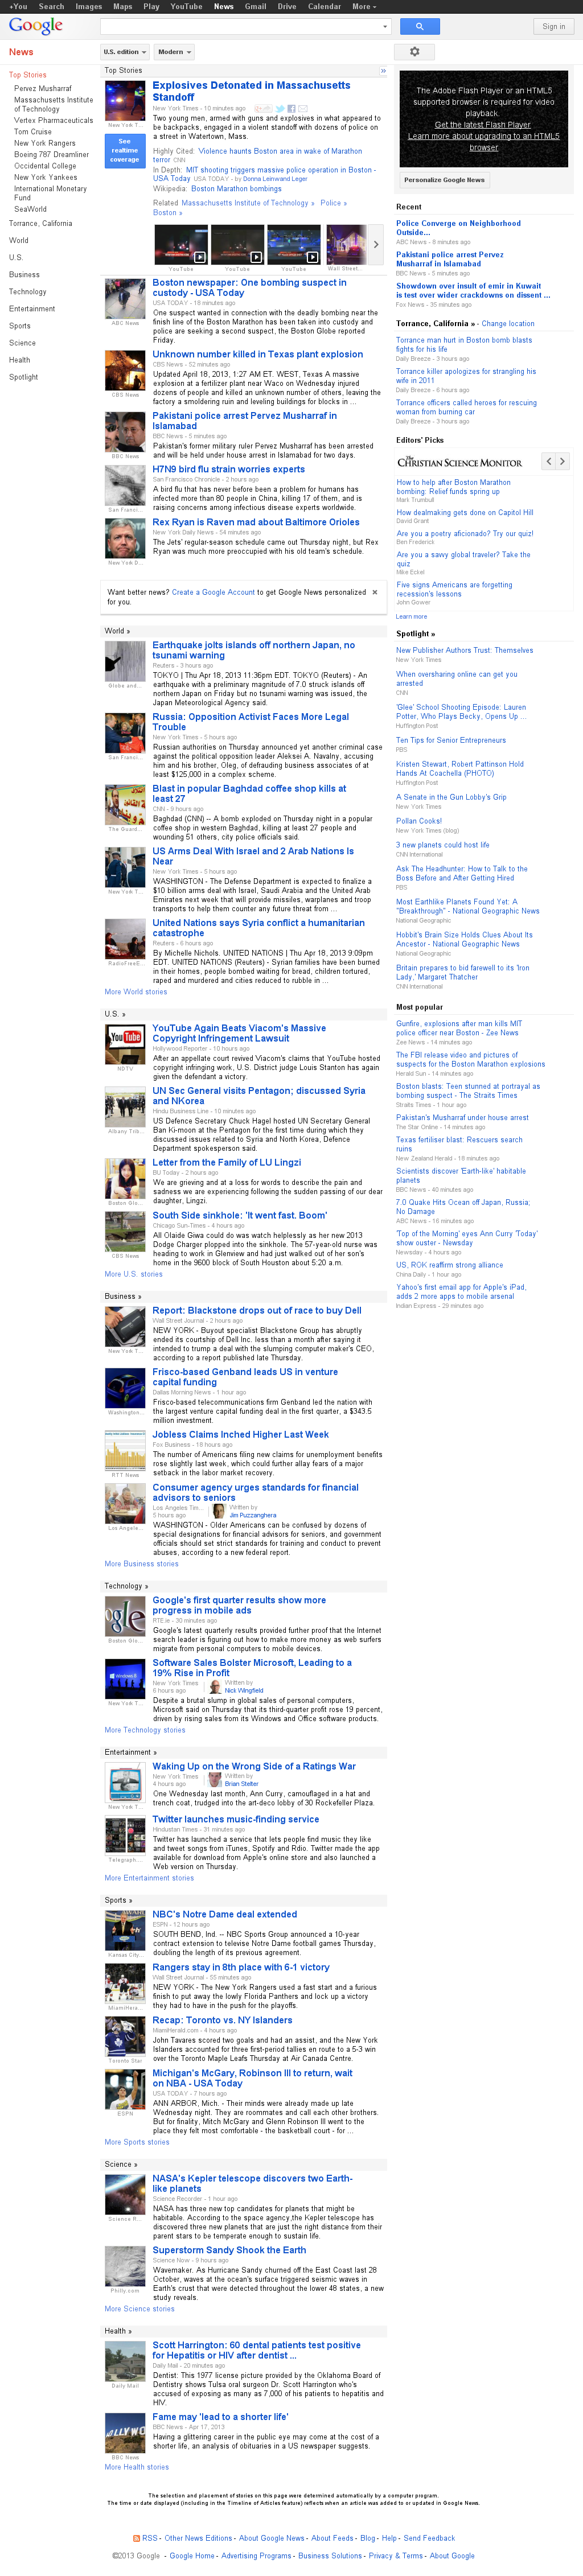 Google News at Friday April 19, 2013, 7:07 a.m. UTC